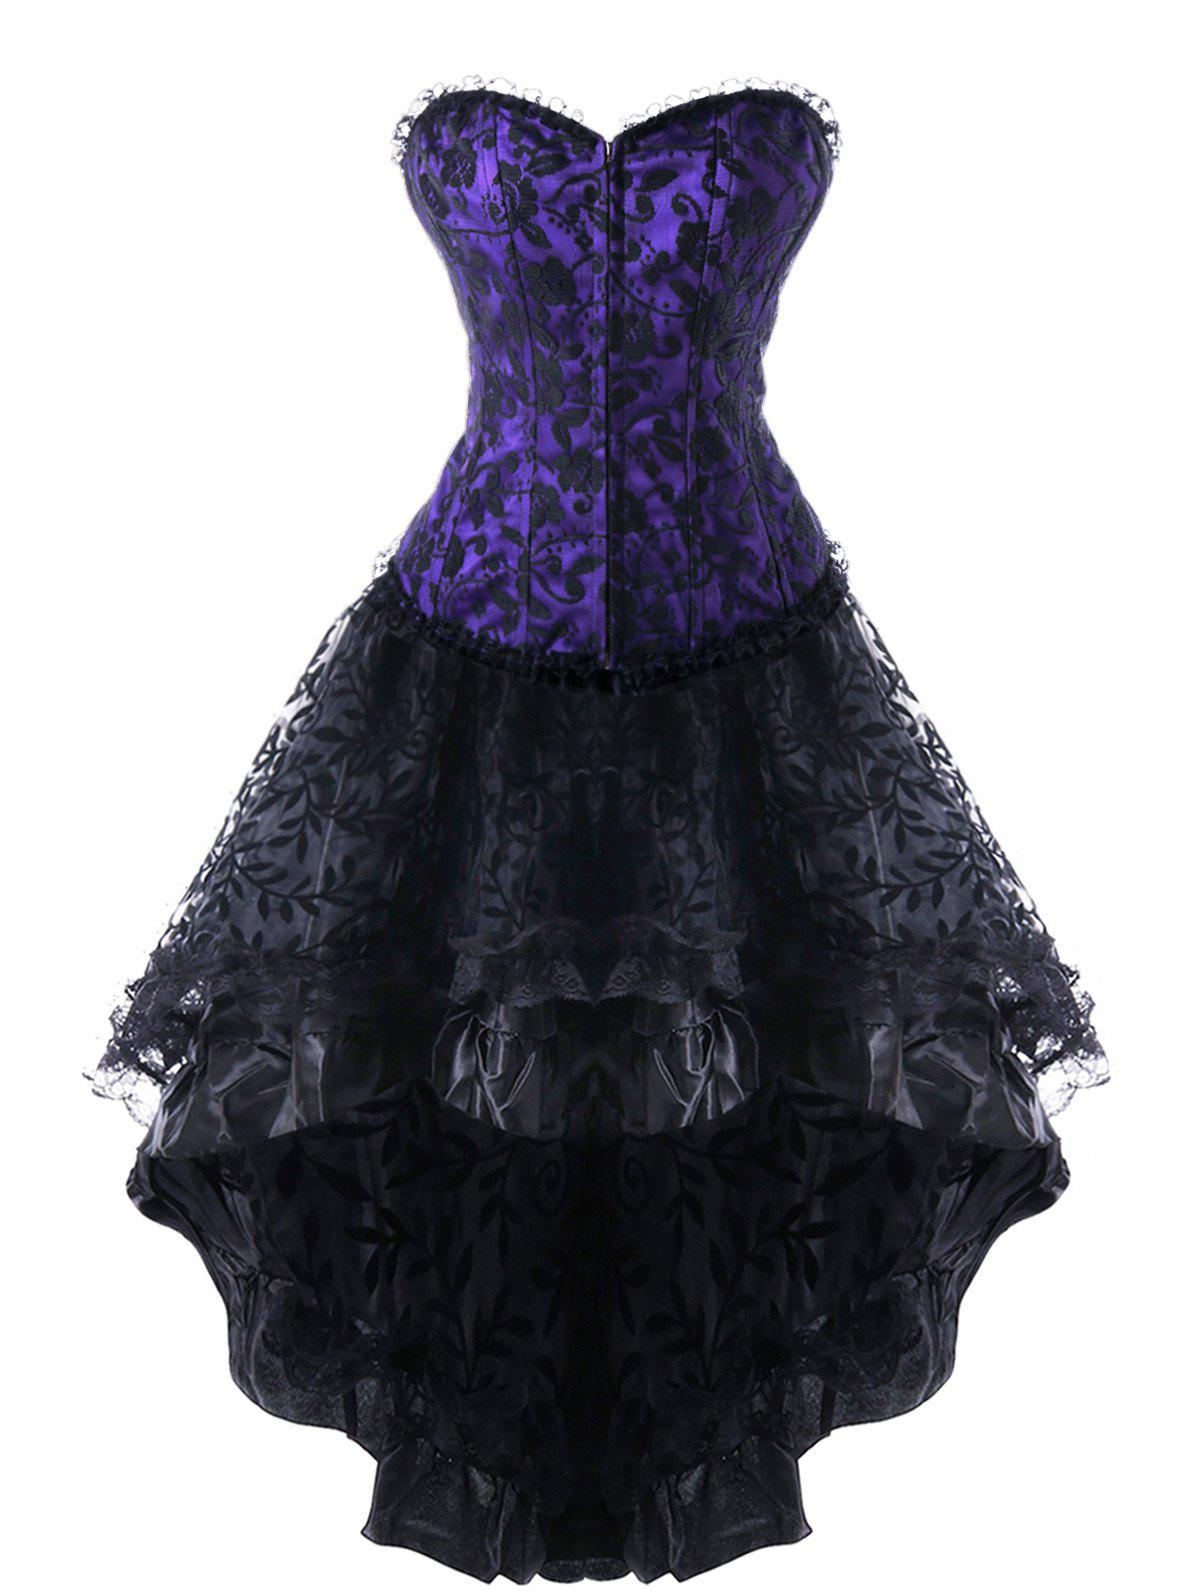 Strapless High Low Lace Up Steel Boned Corset Dress - PURPLE M